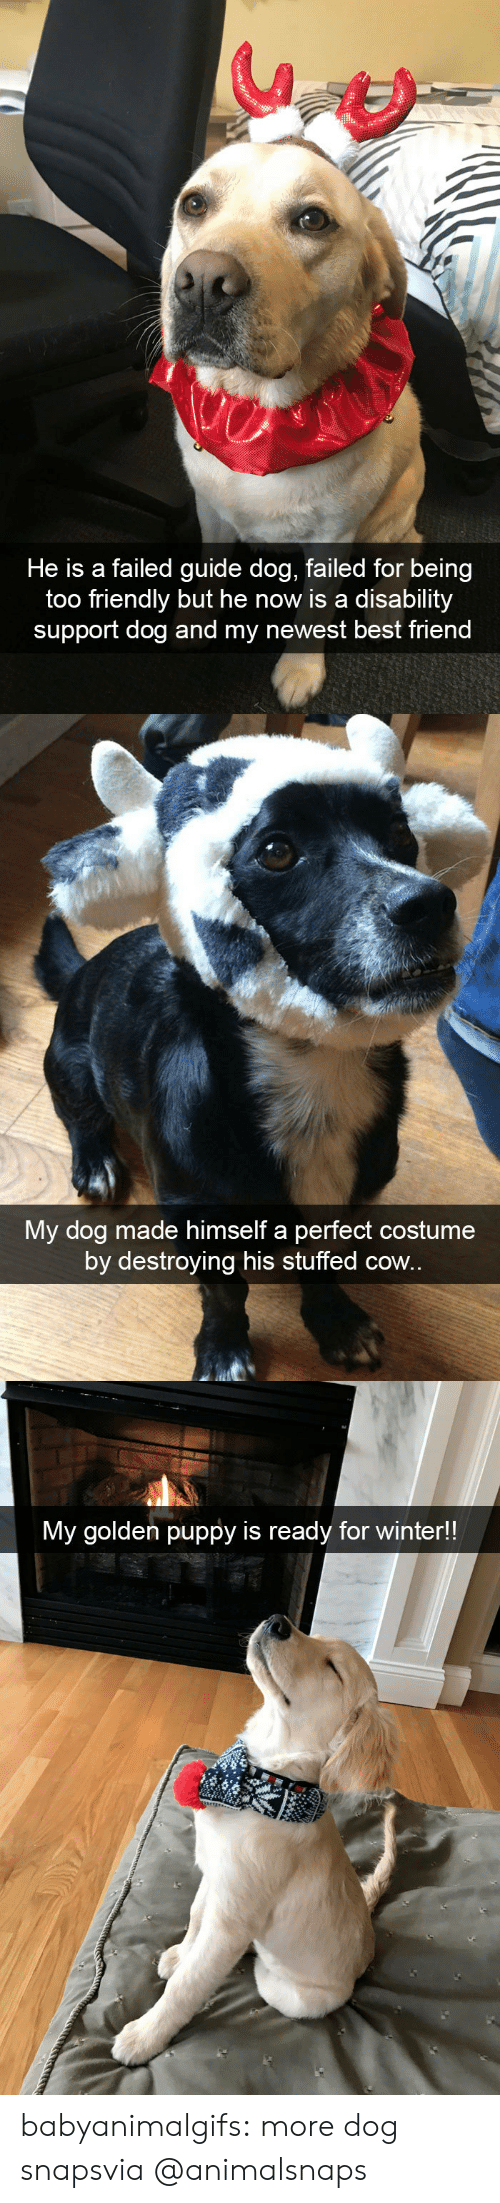 Puppy: He is a failed guide dog, failed for being  too friendly but he now is a disability  support dog and my newest best friend   My dog made himself a perfect costume  by destroying his stuffed cow.   My golden puppy is ready for winter!! babyanimalgifs:  more dog snapsvia @animalsnaps​